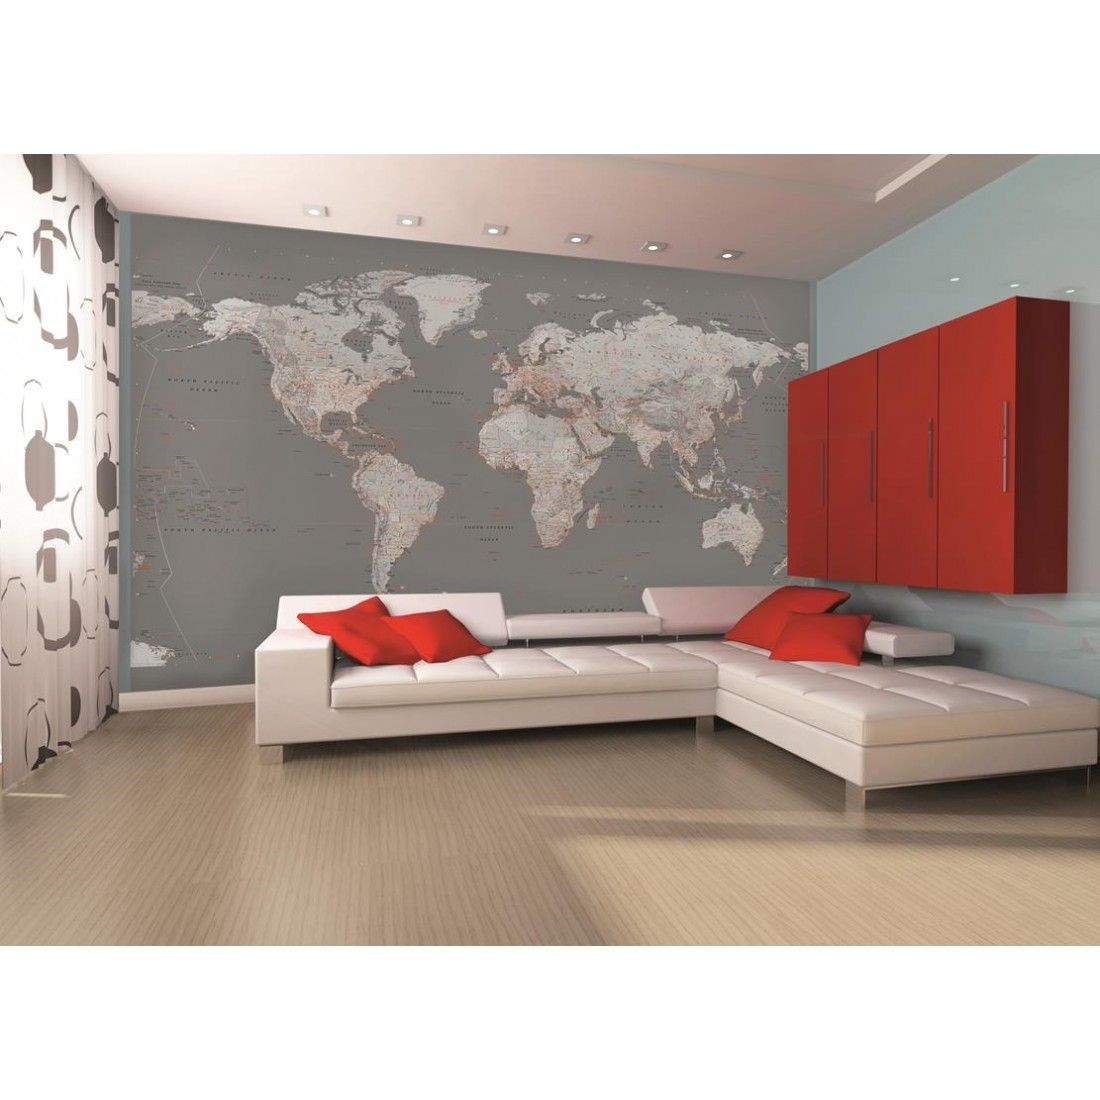 Silver world map wall mural want something similar for the office silver world map wall mural want something similar for the office sciox Images